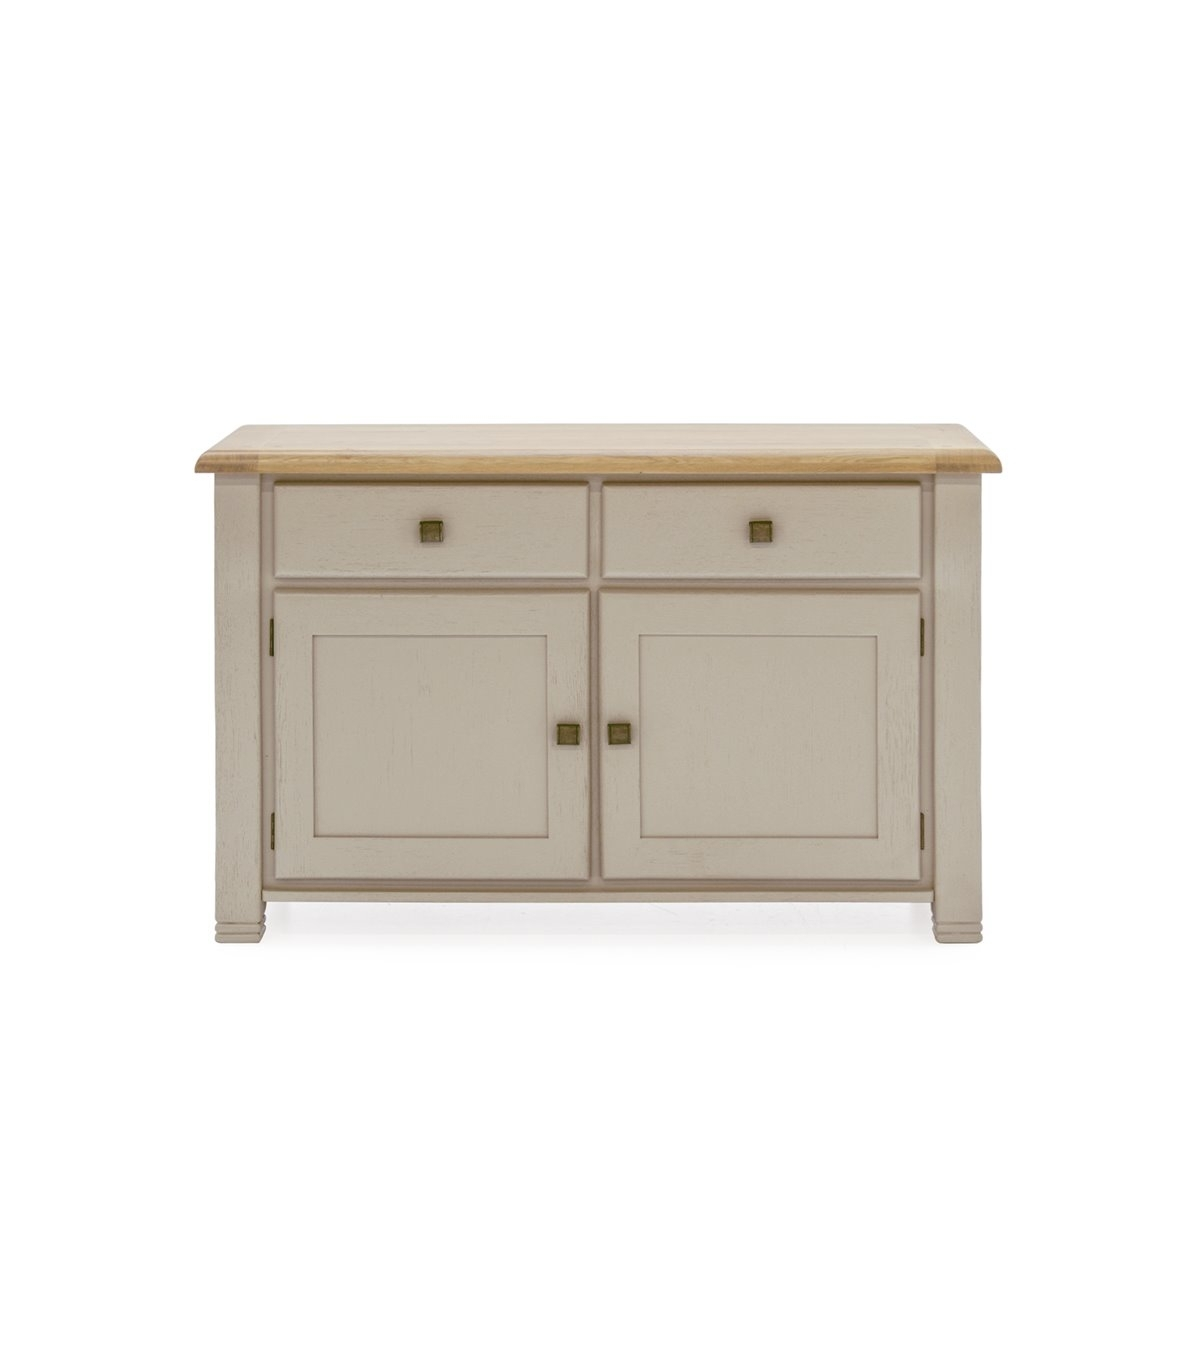 Logan Sideboard - Large with regard to Logan Sideboards (Image 12 of 30)